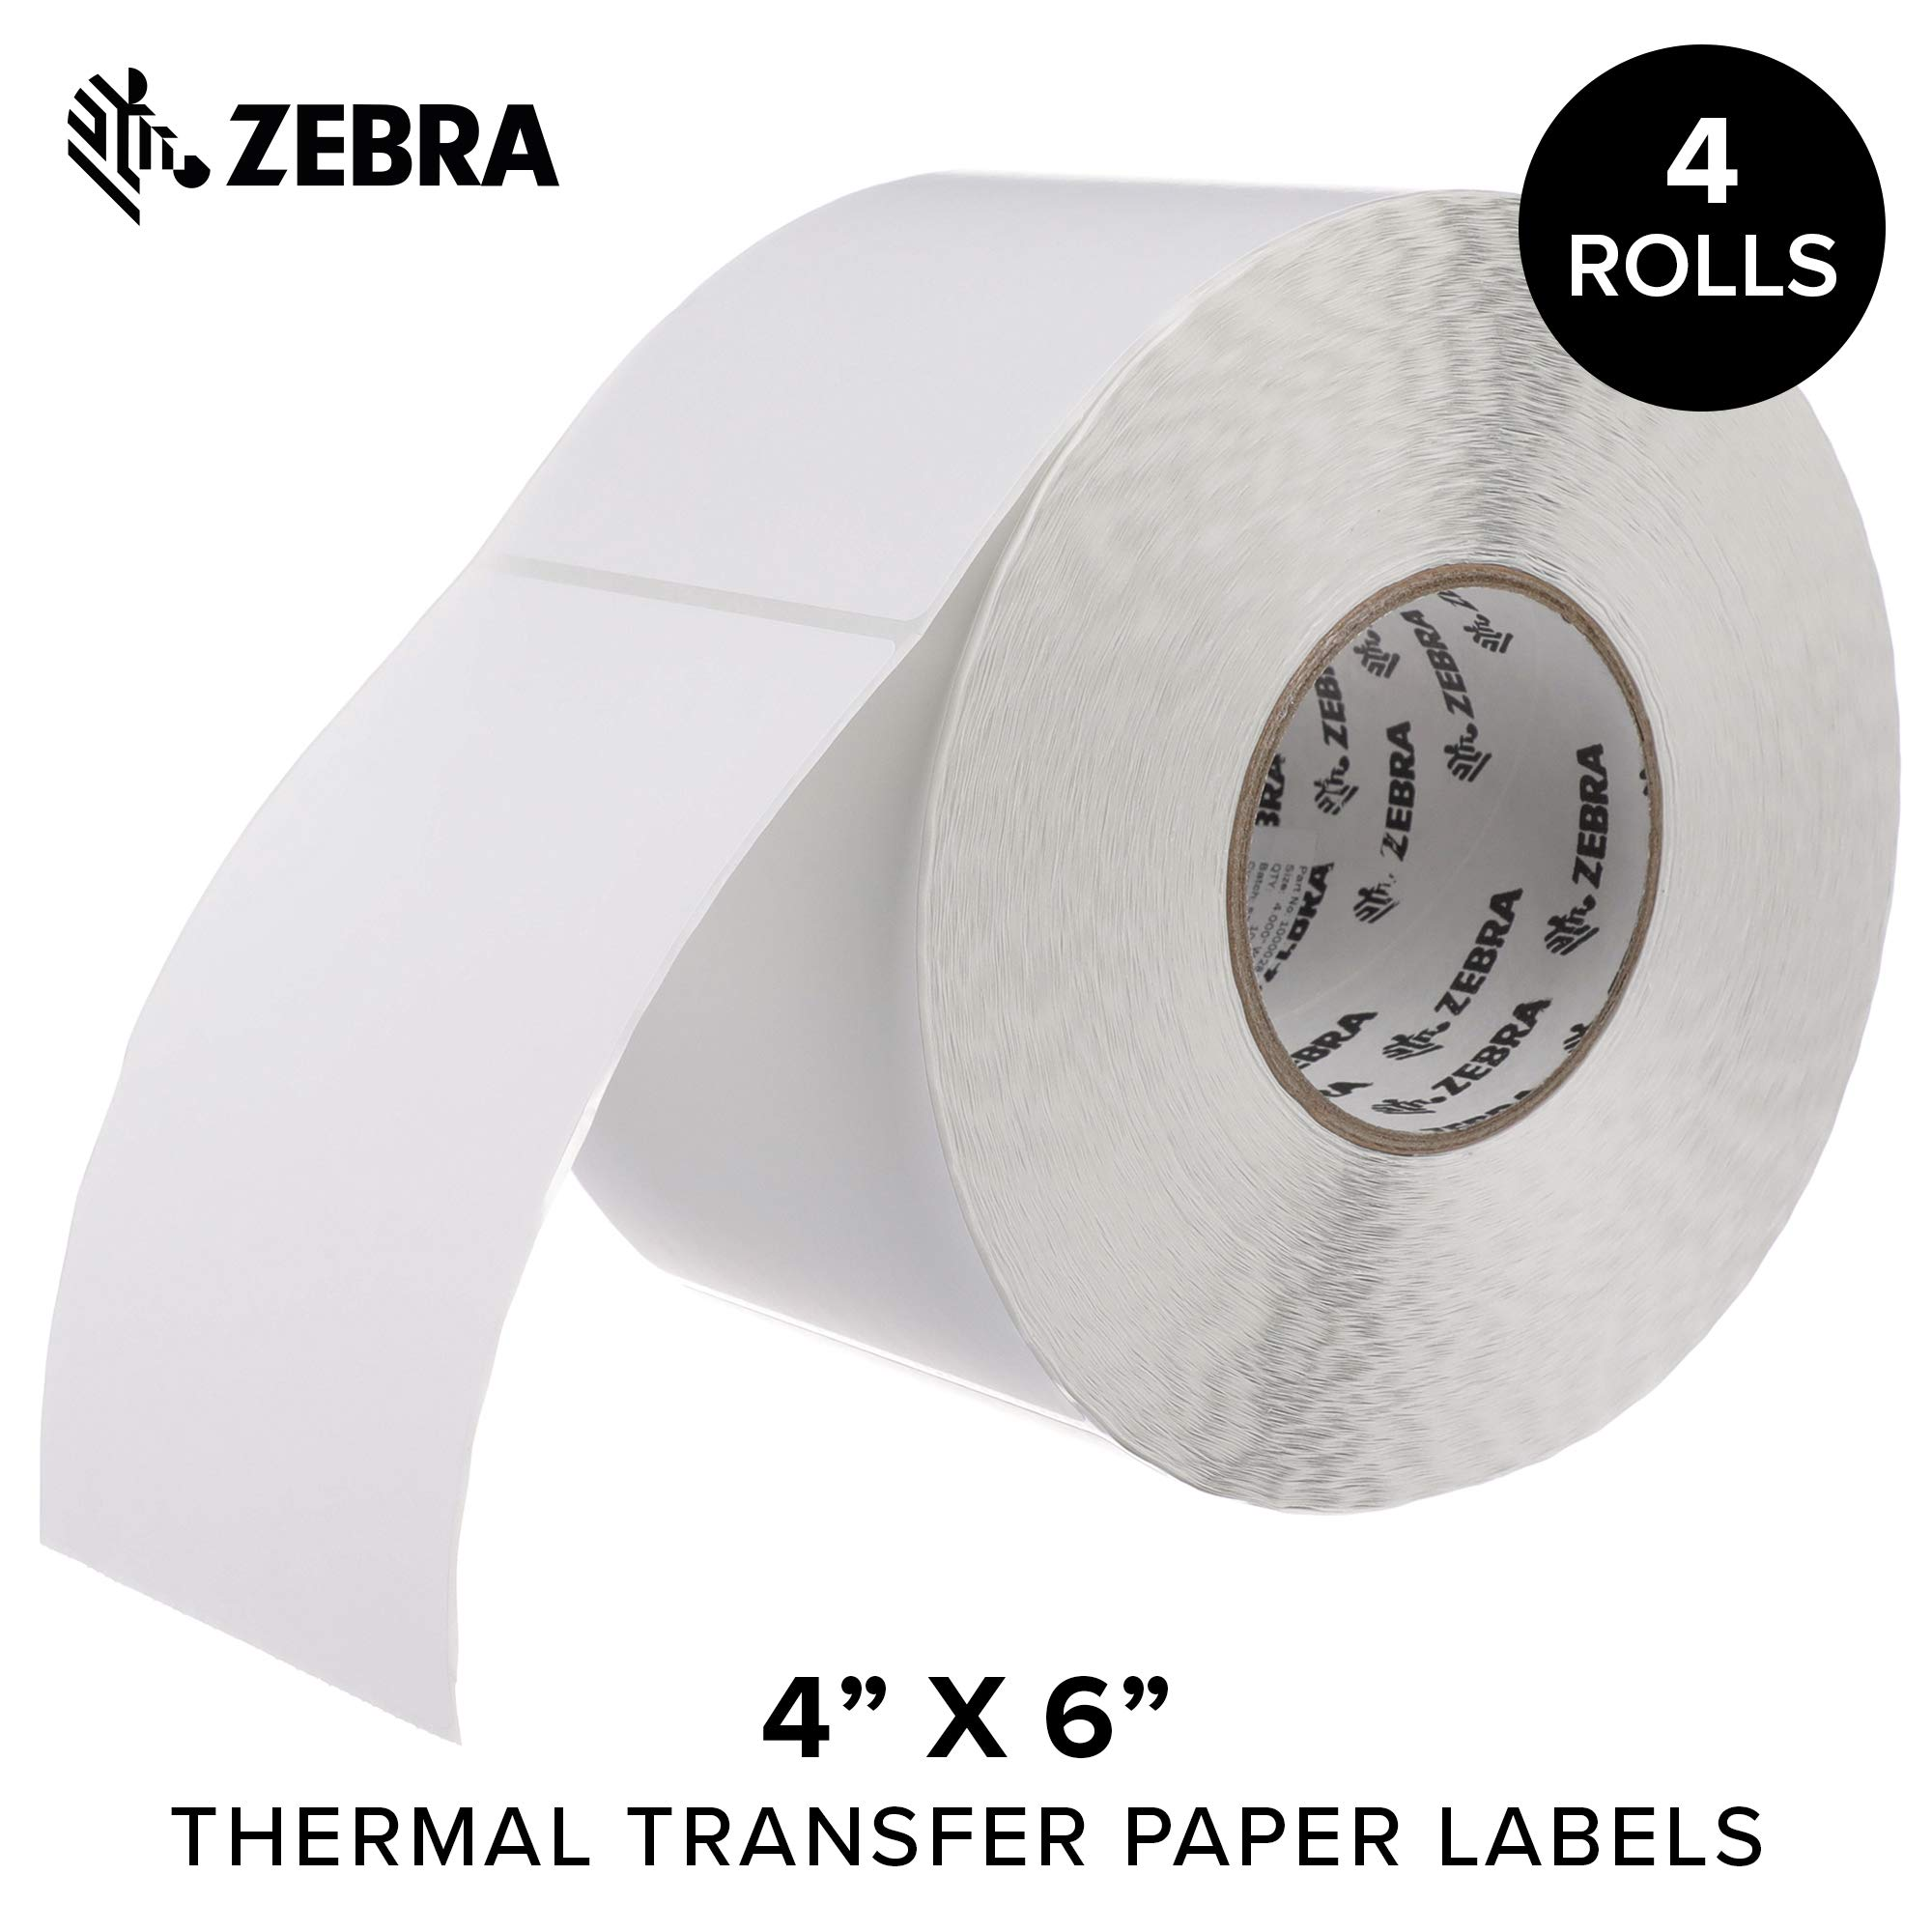 Zebra - 4 x 6 in Thermal Transfer Paper Labels, Z-Perform 2000T Permanent Adhesive Shipping Labels, Zebra Industrial Printer Compatible, 3 in Core - 4 Rolls by ZEBRA